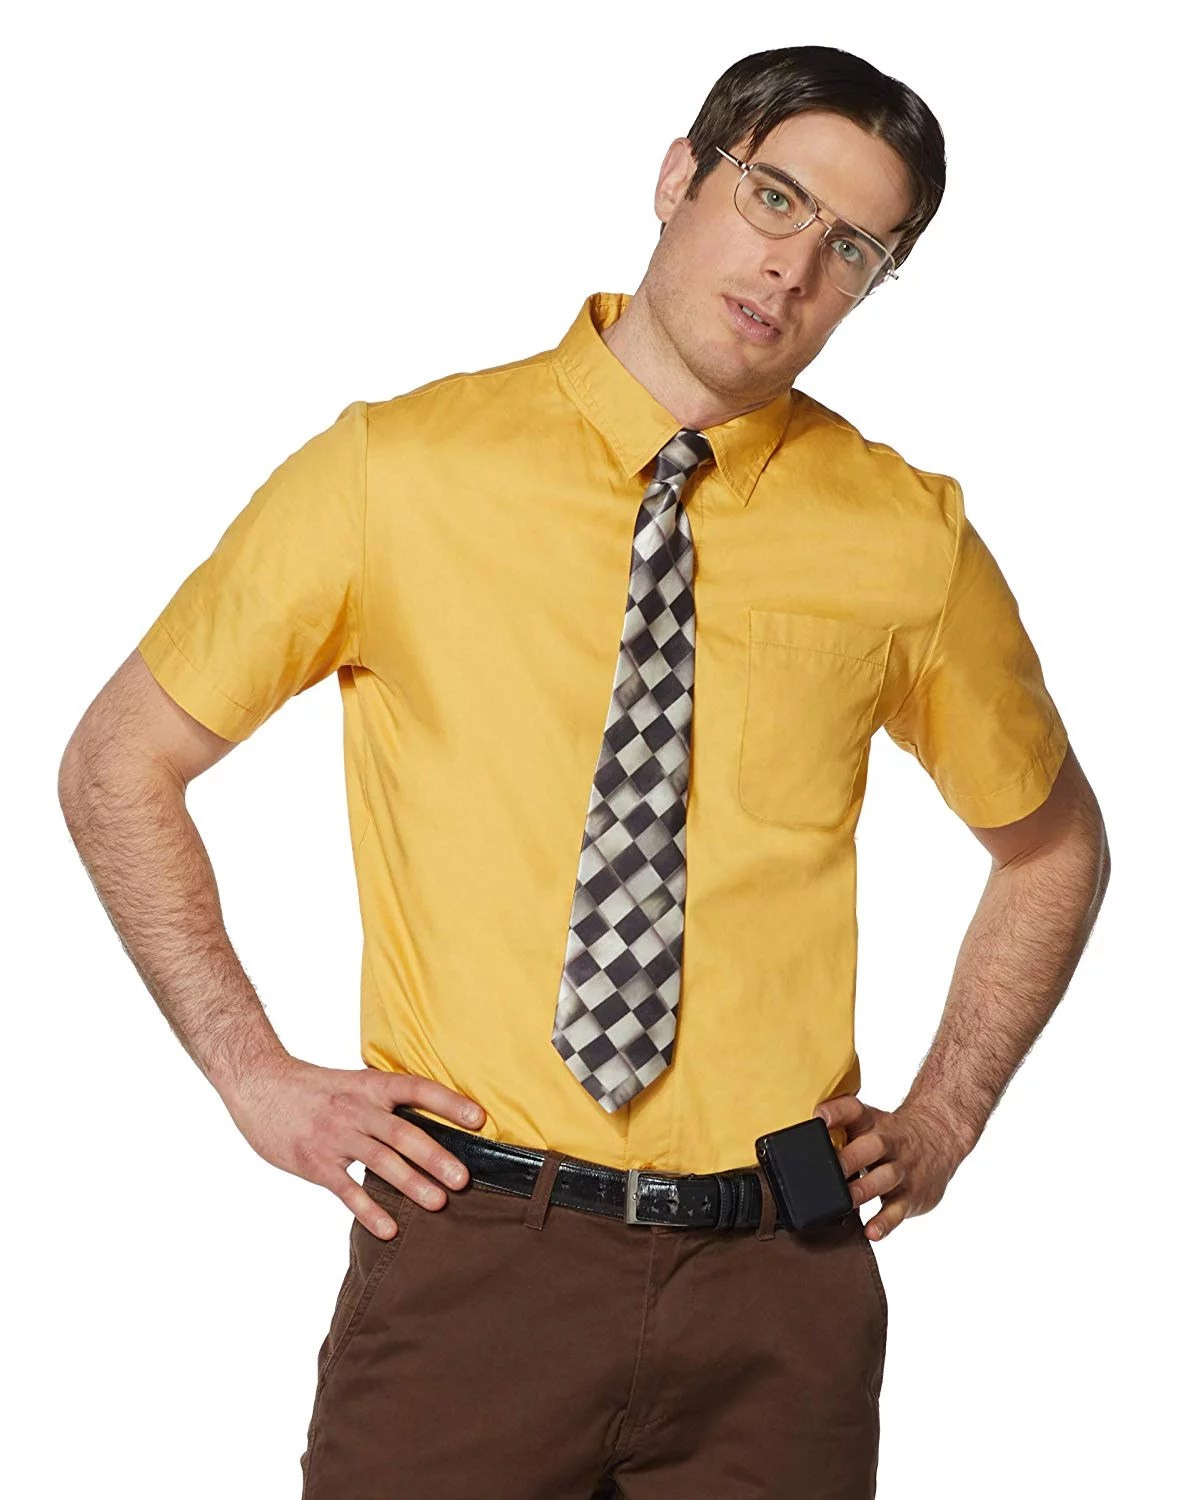 Image result for Dwight Schrute costume